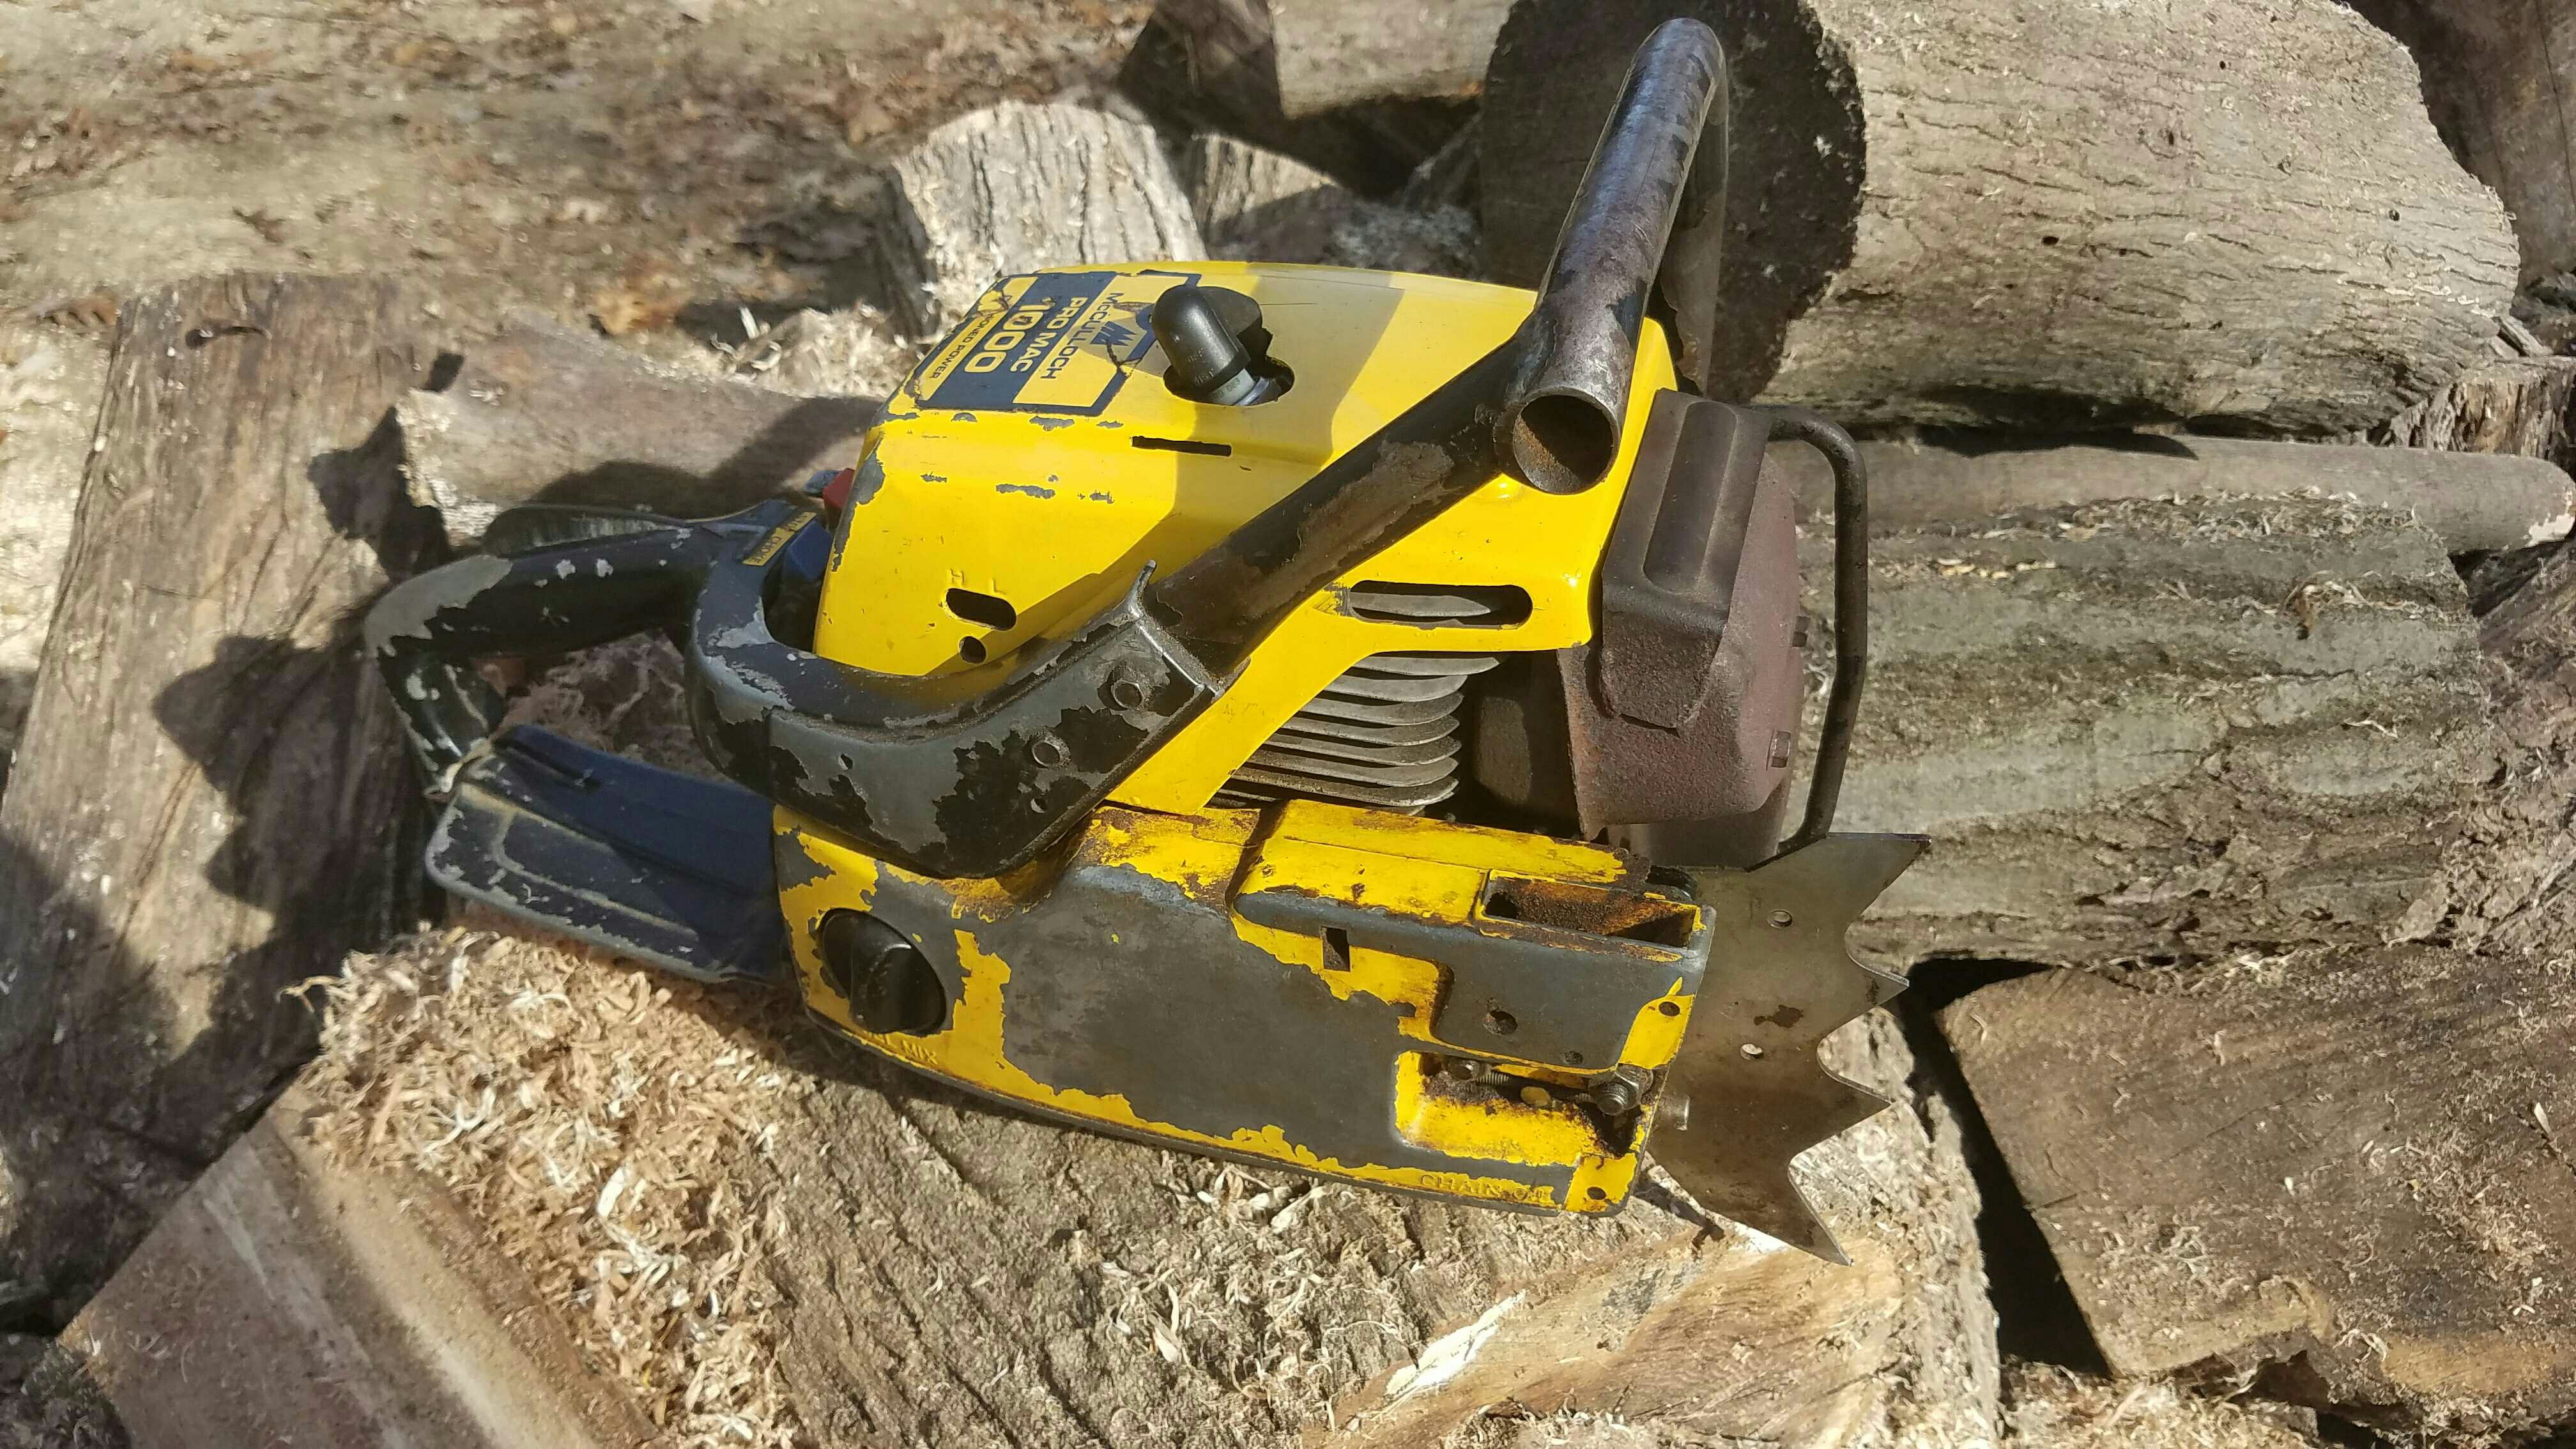 SELLING - Mcculloch Pro Mac 1000 | Outdoor Power Equipment Forum